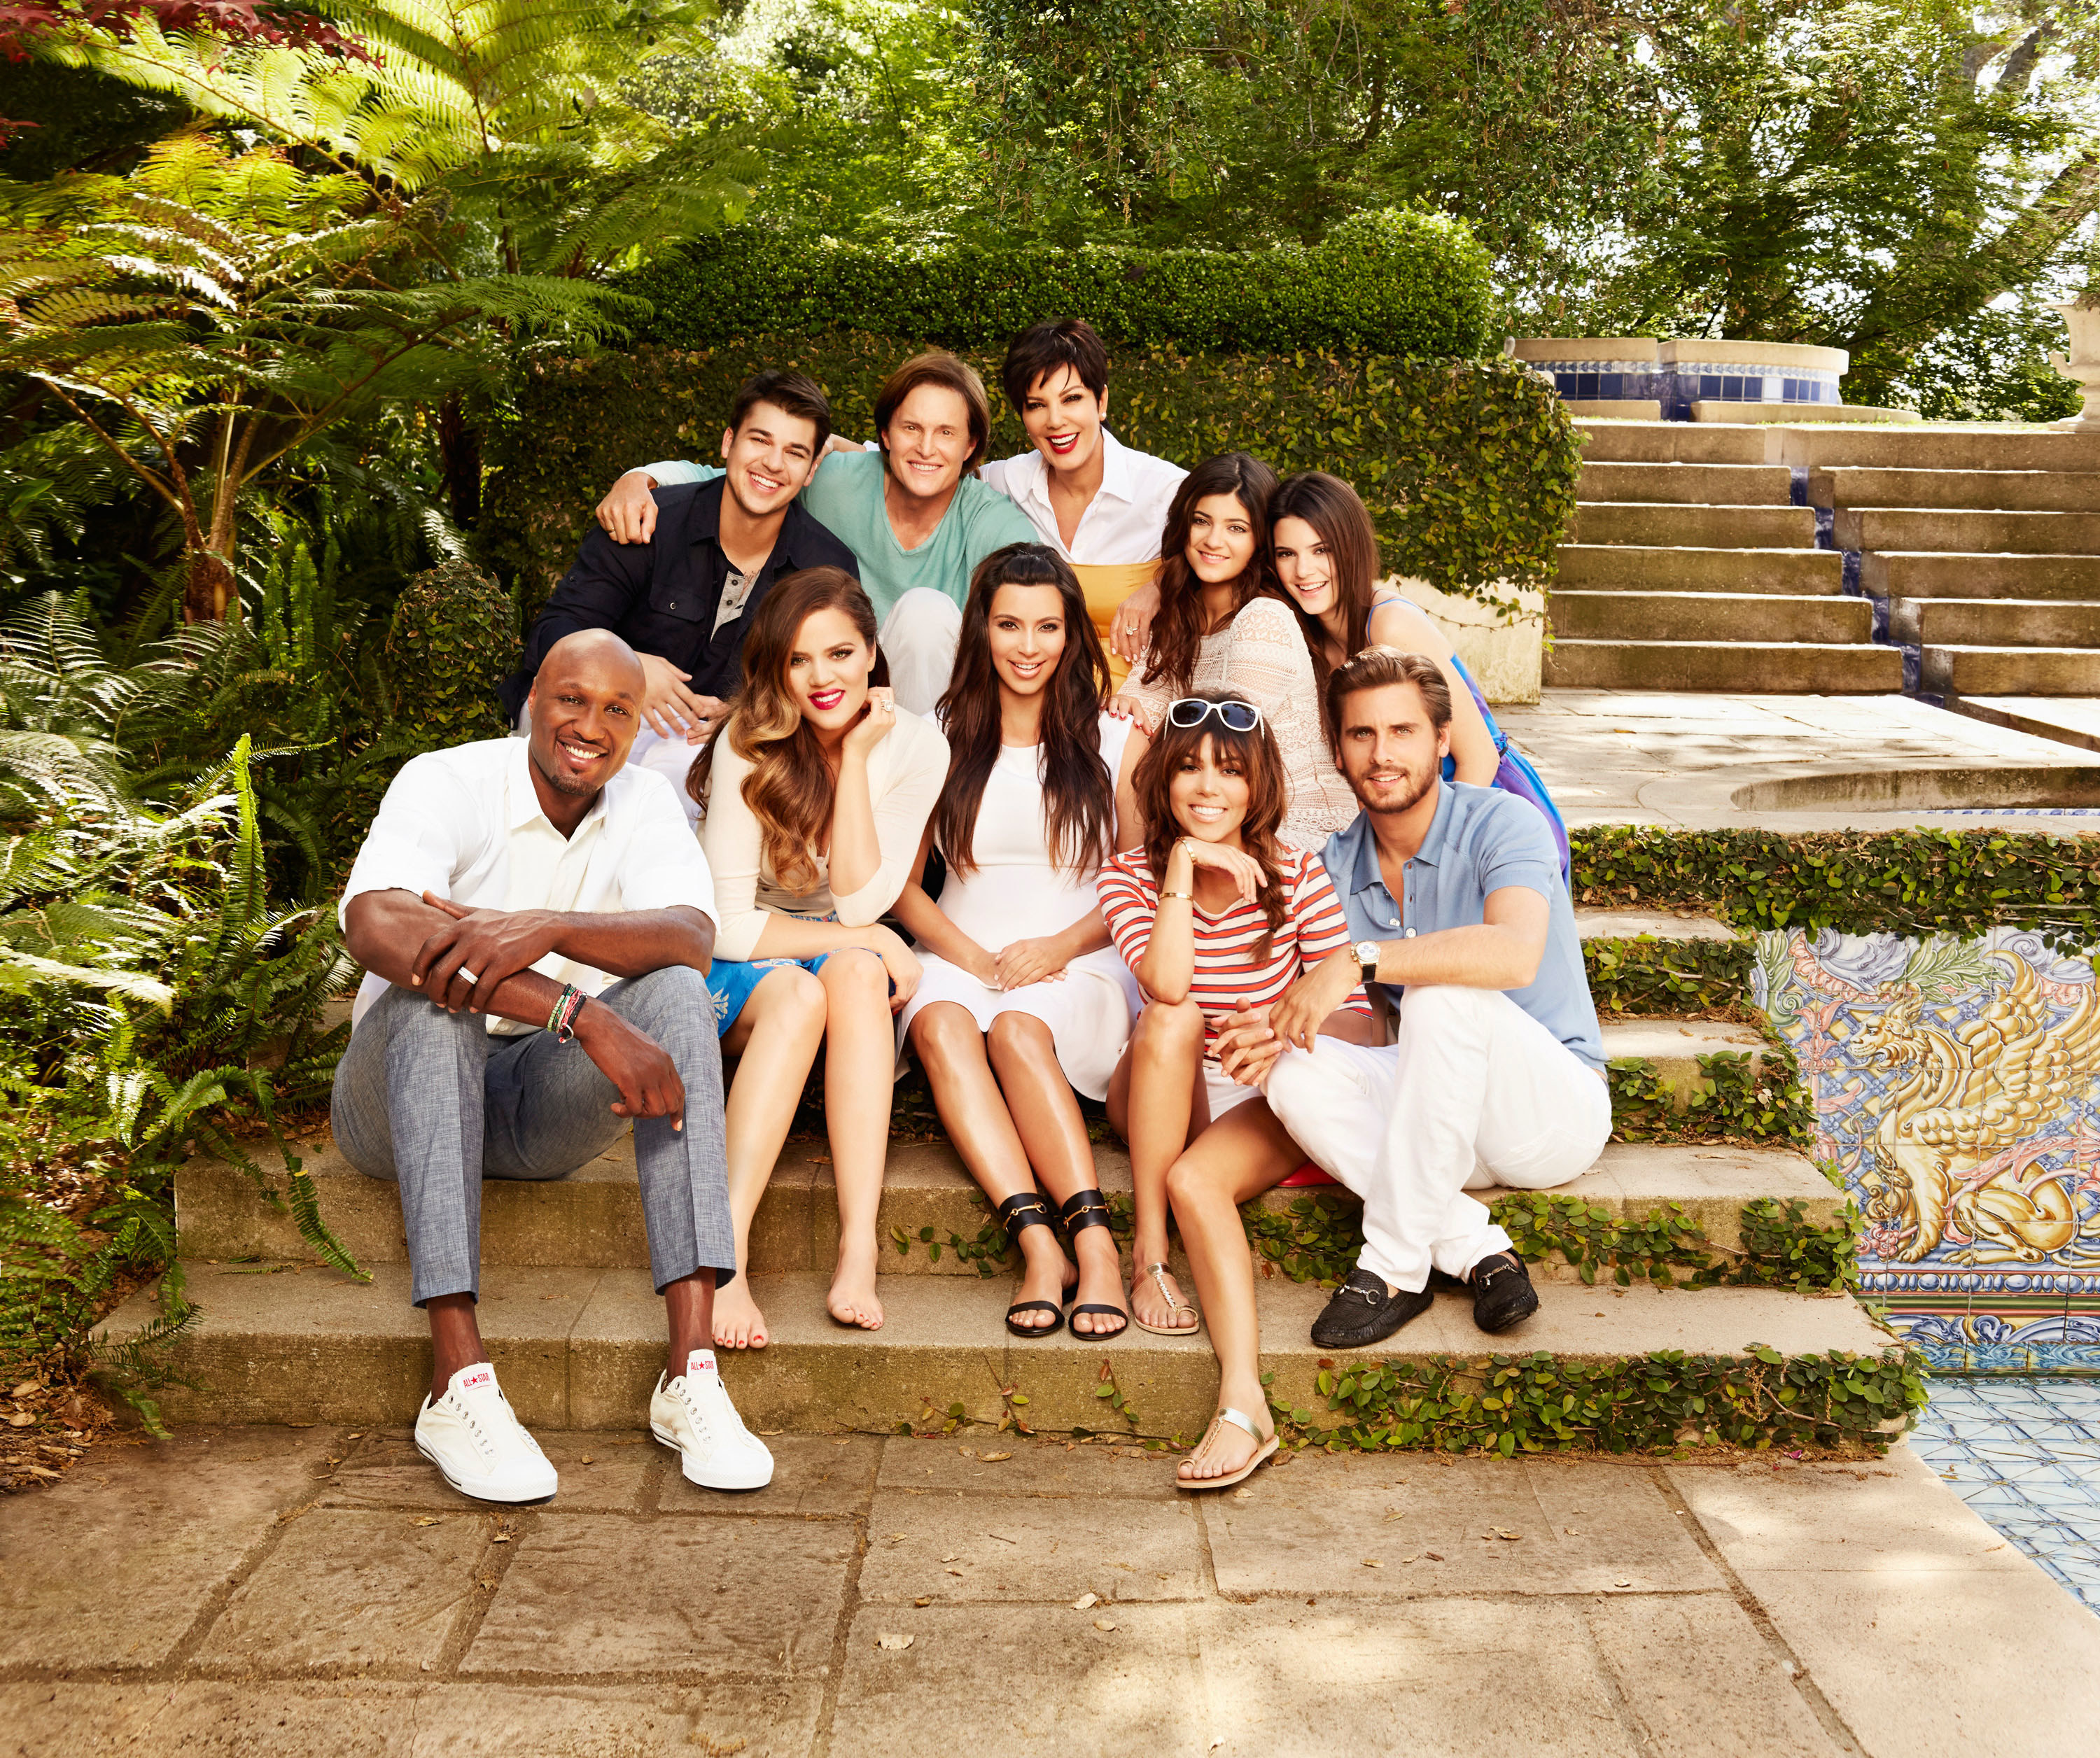 A shot from Season 8 of the show with the Kardashians, Jenners, and others sitting on stairs